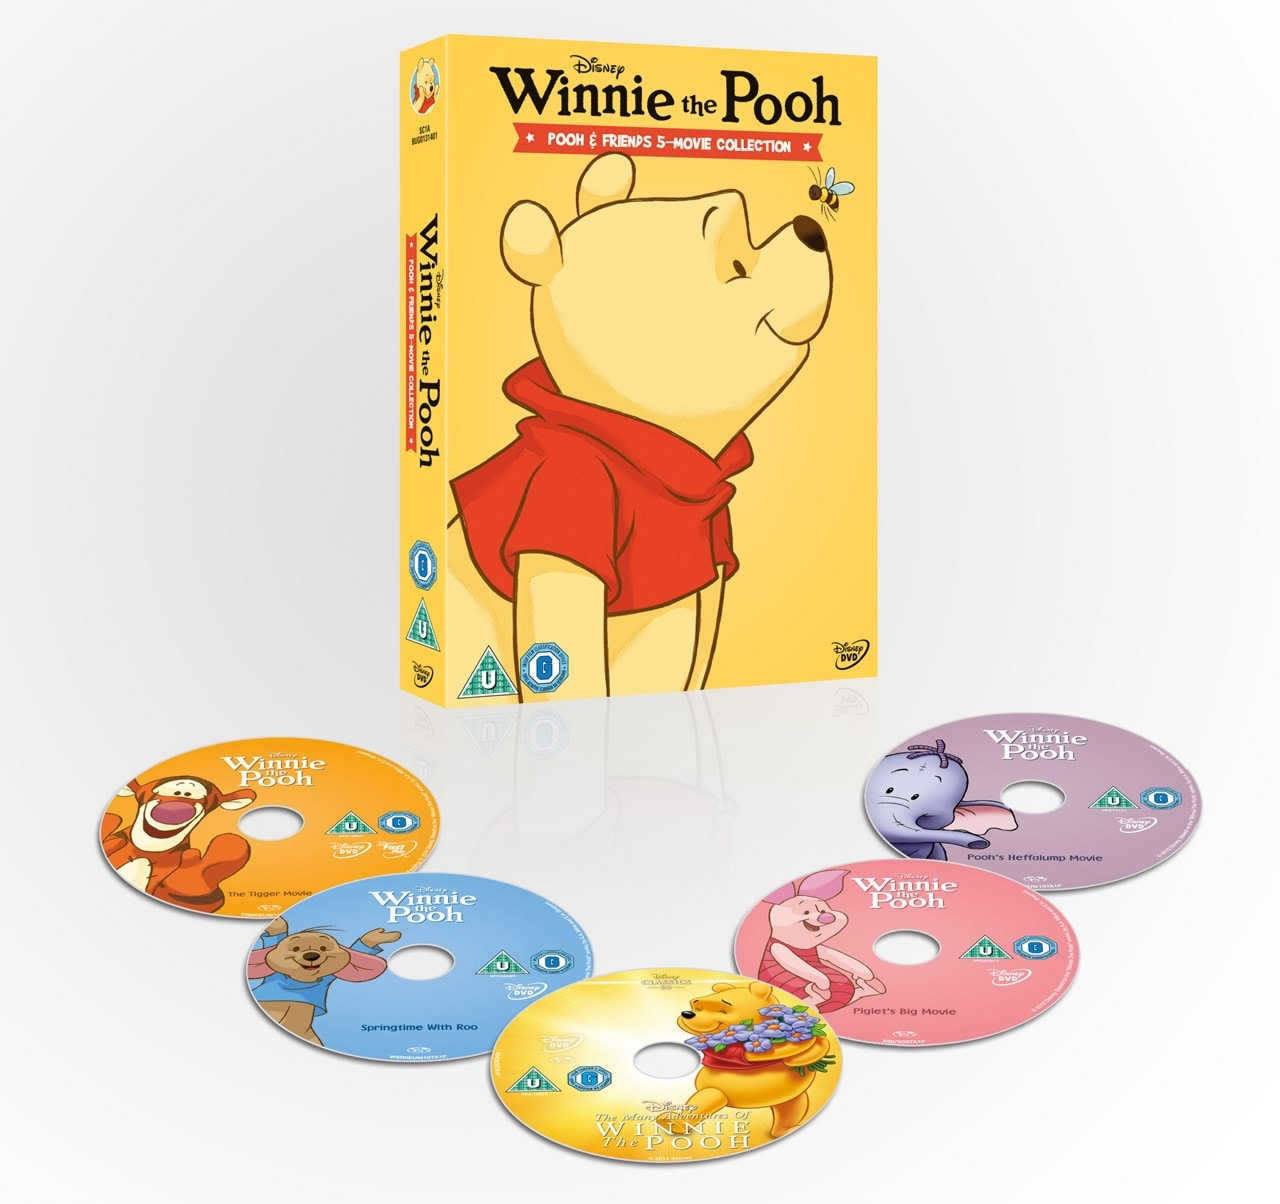 Winnie the Pooh: Pooh & Friends - 5-movie Collection - 3